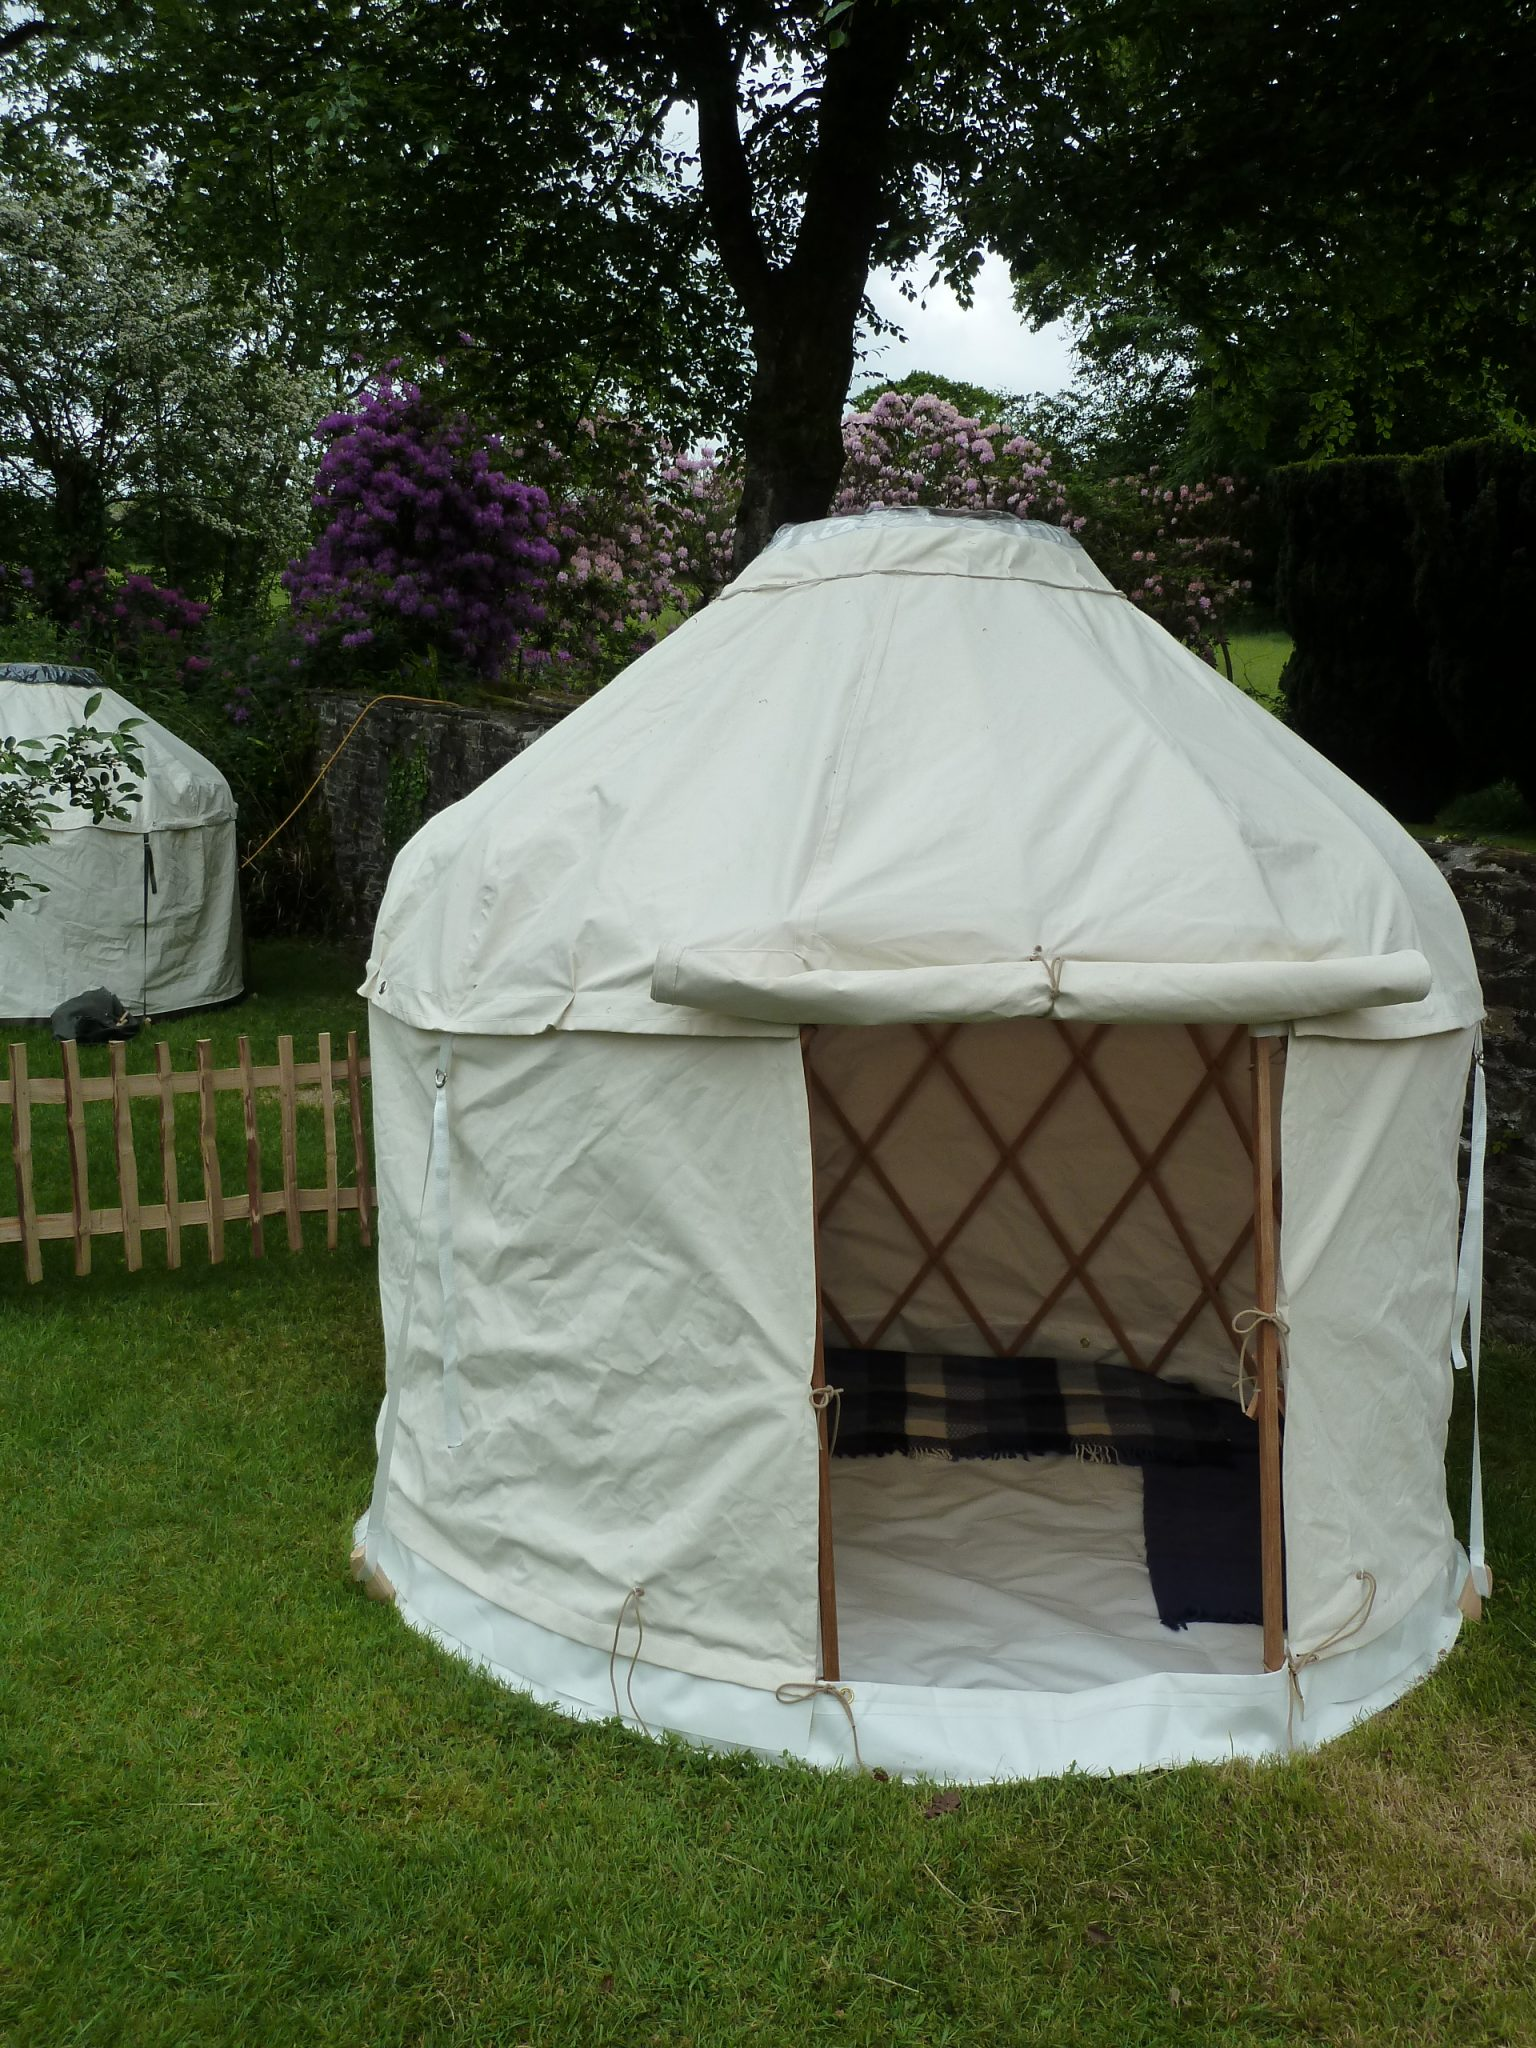 Our Small Yurt On Show In The Gardens At Coombe Trenchard